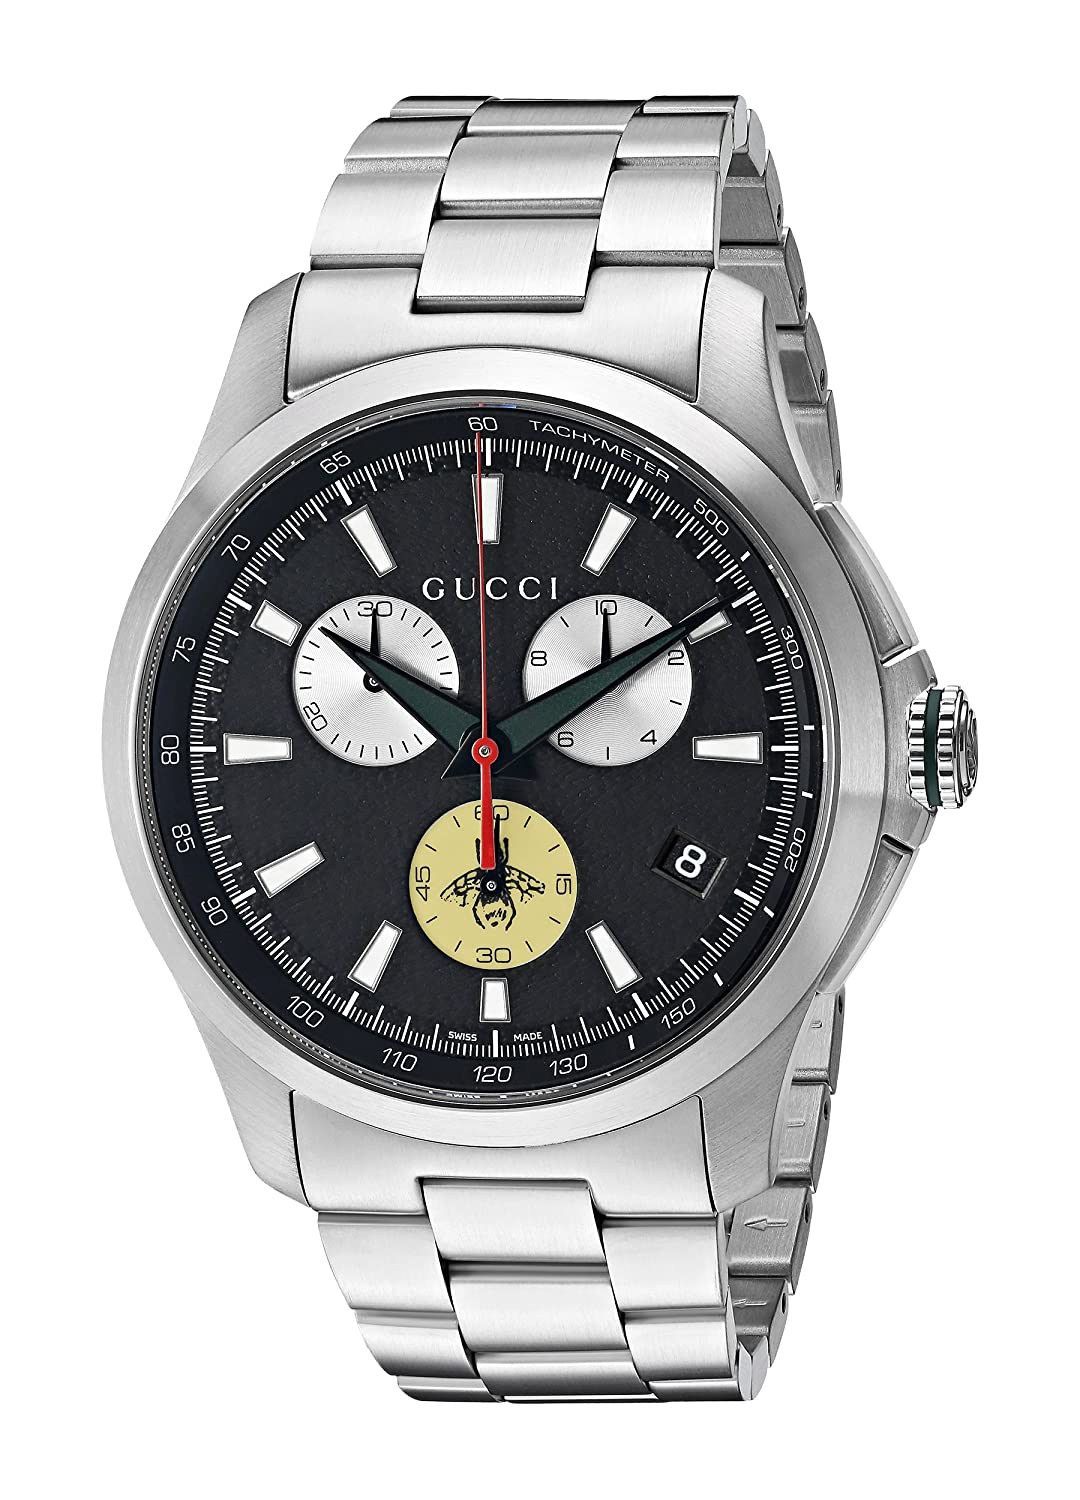 bbebef66699 Buy Gucci G-Timeless Chronograph Black Dial Stainless Steel Men s Watch  YA126267 Online at Low Prices in India - Amazon.in